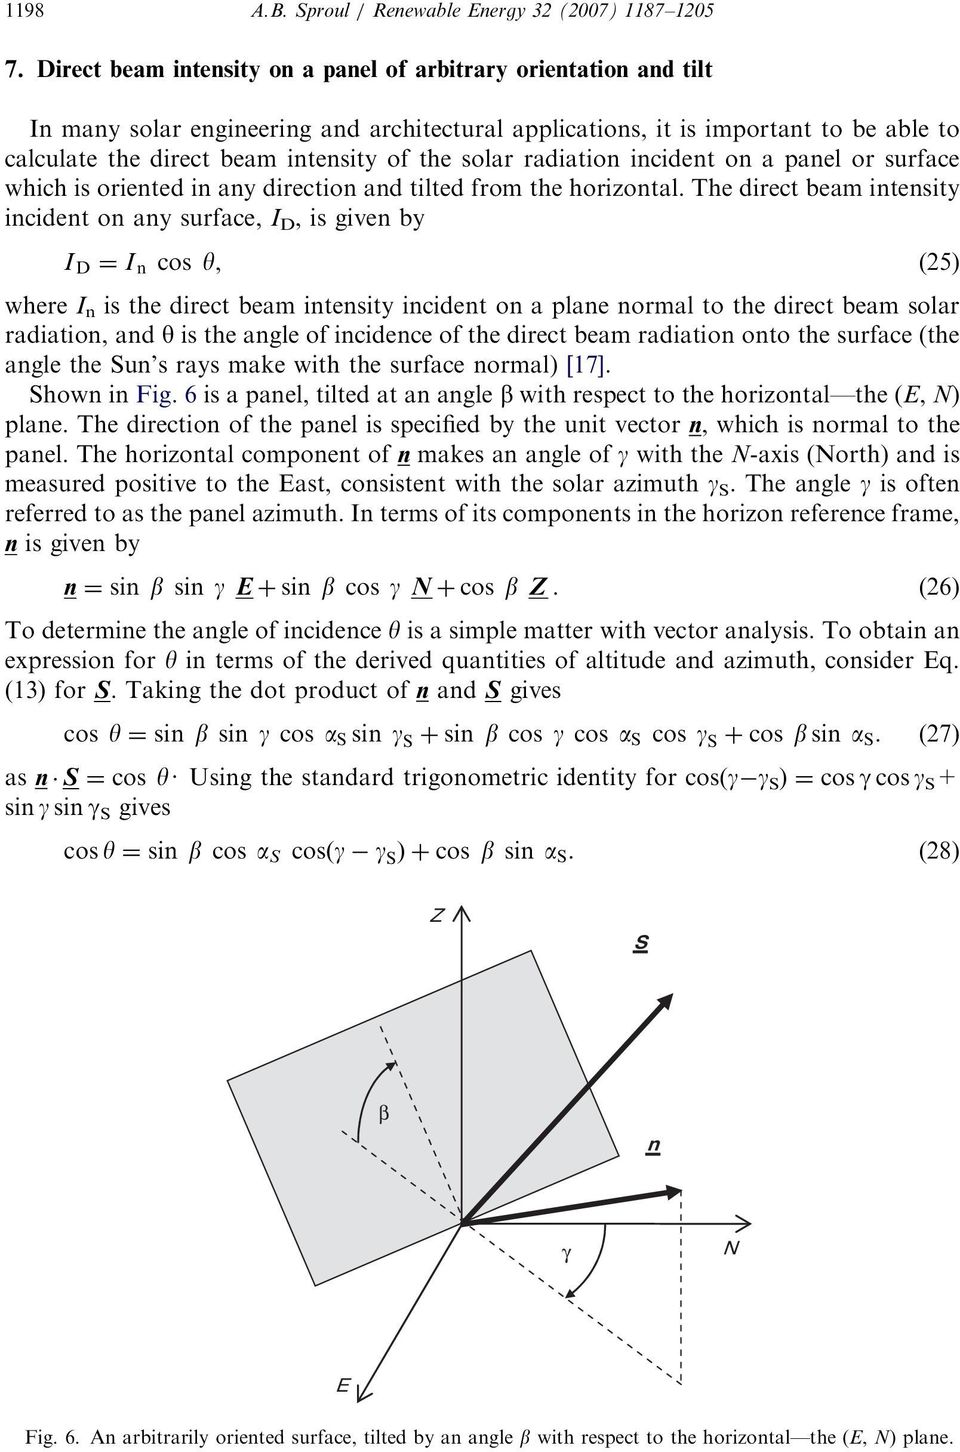 vector and geometric calculus pdf